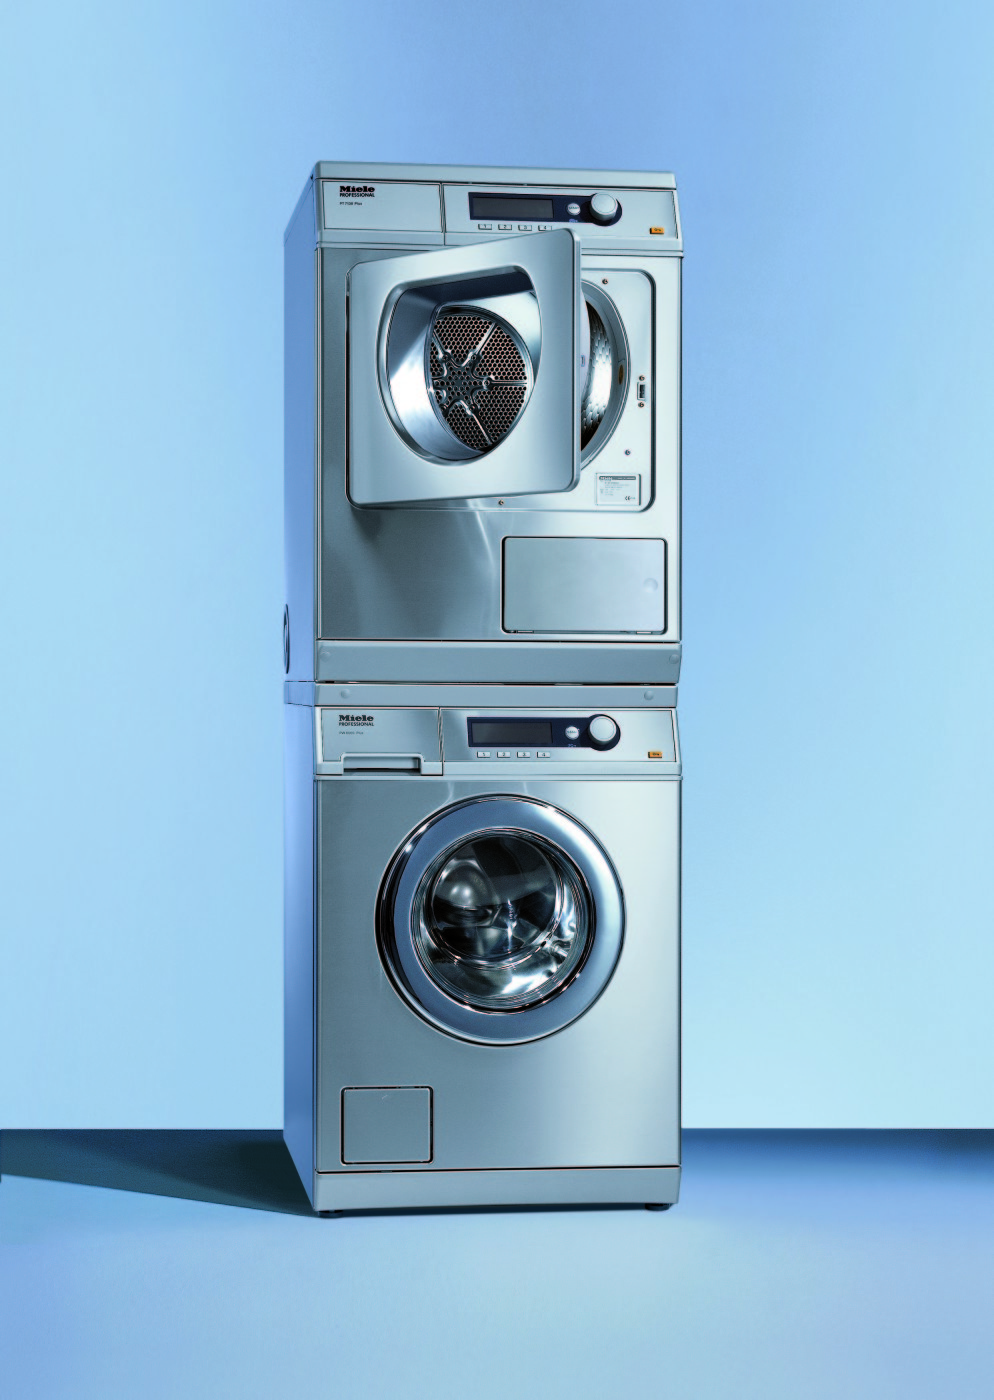 Stainless Steel Washer & Dryer Sets